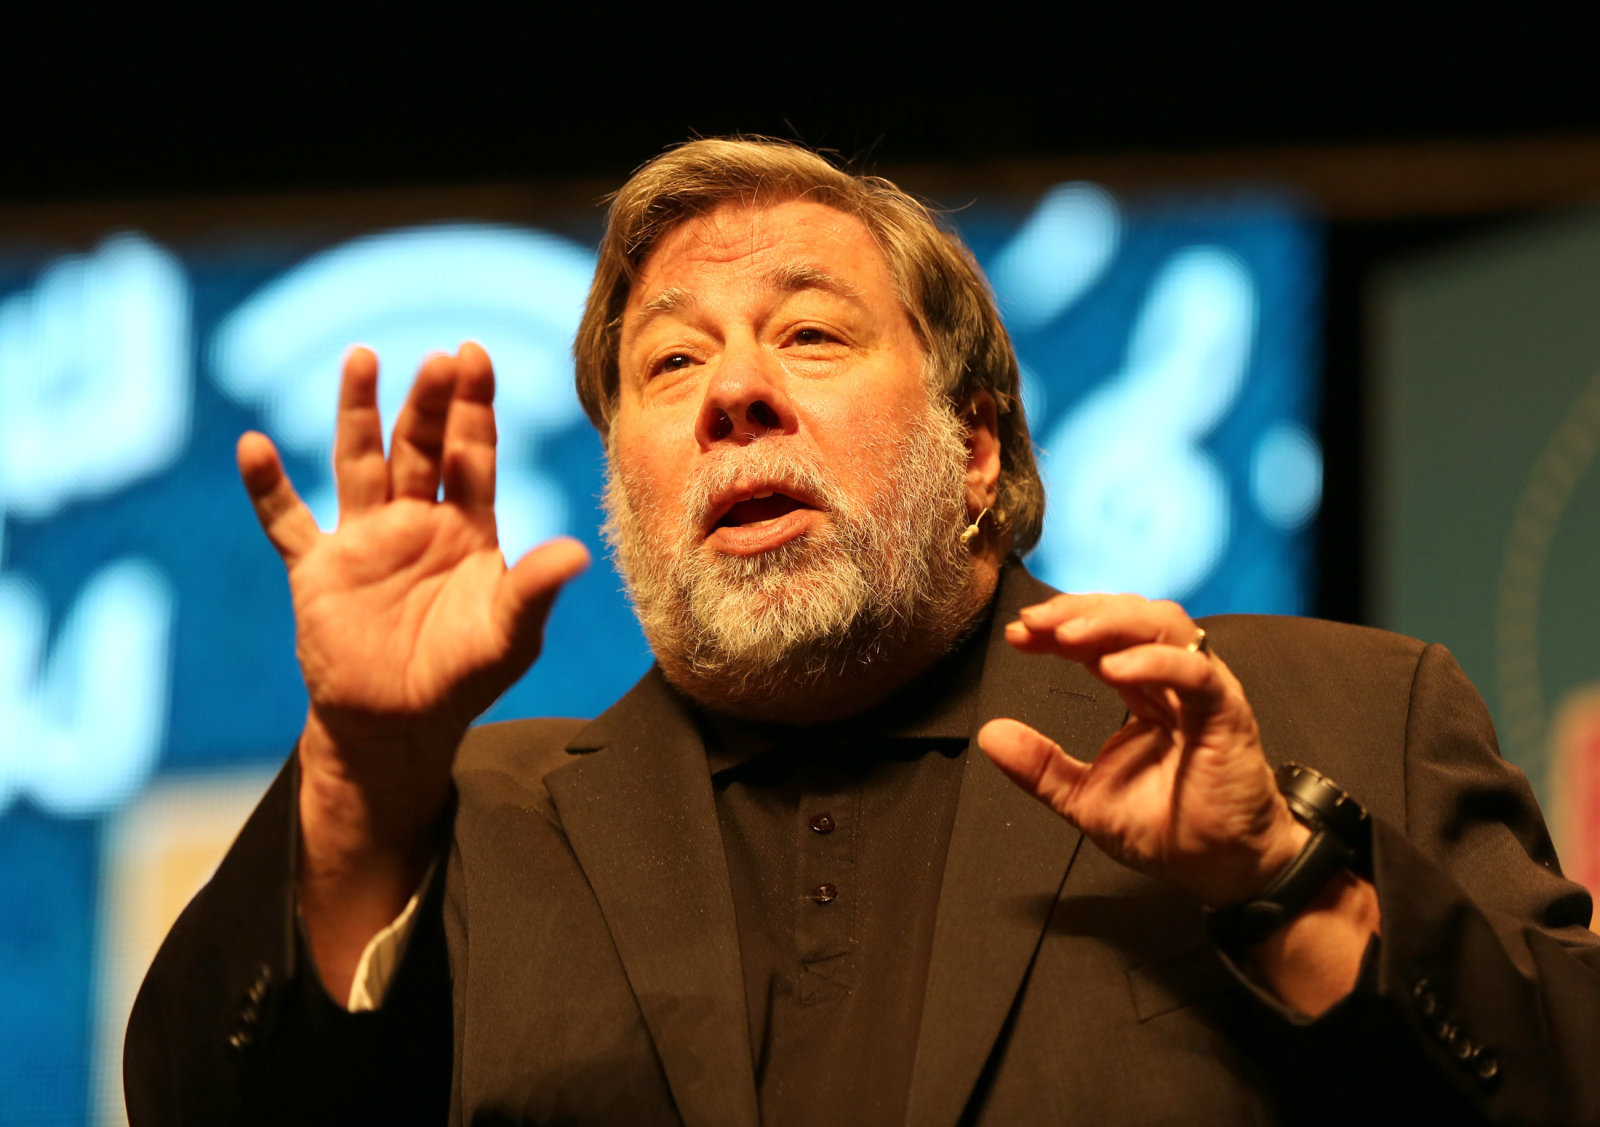 """Steve Wozniak, the co-founder of a US technology giant Apple which used its Irish subsidiaries to lower its tax bill, speaking at the Millennium forum in Londonderry has said big corporations should be treated the same as the """"little guy""""."""